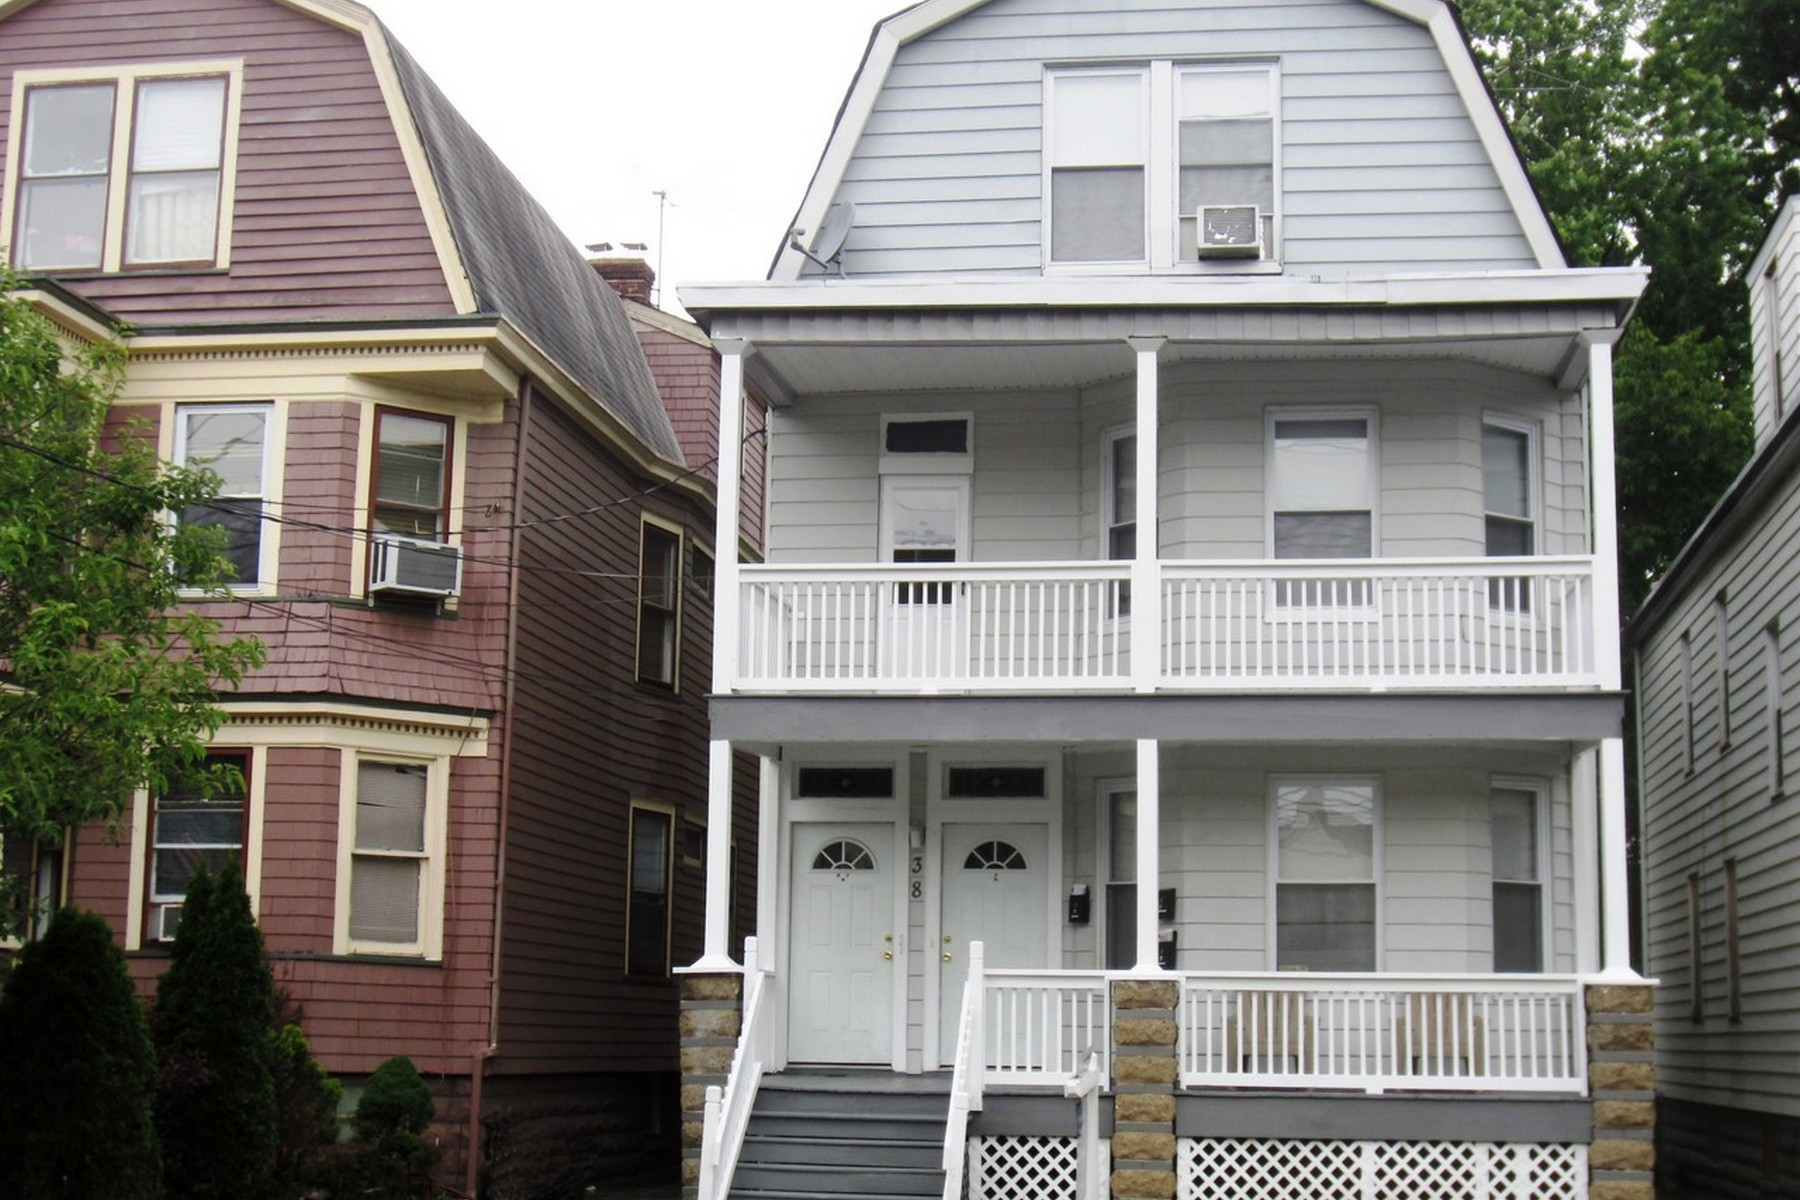 Multi-Family Home for Rent at Spacious Three Bedroom Apartment 38 Prospect Street, #B2 Bloomfield, New Jersey 07003 United States